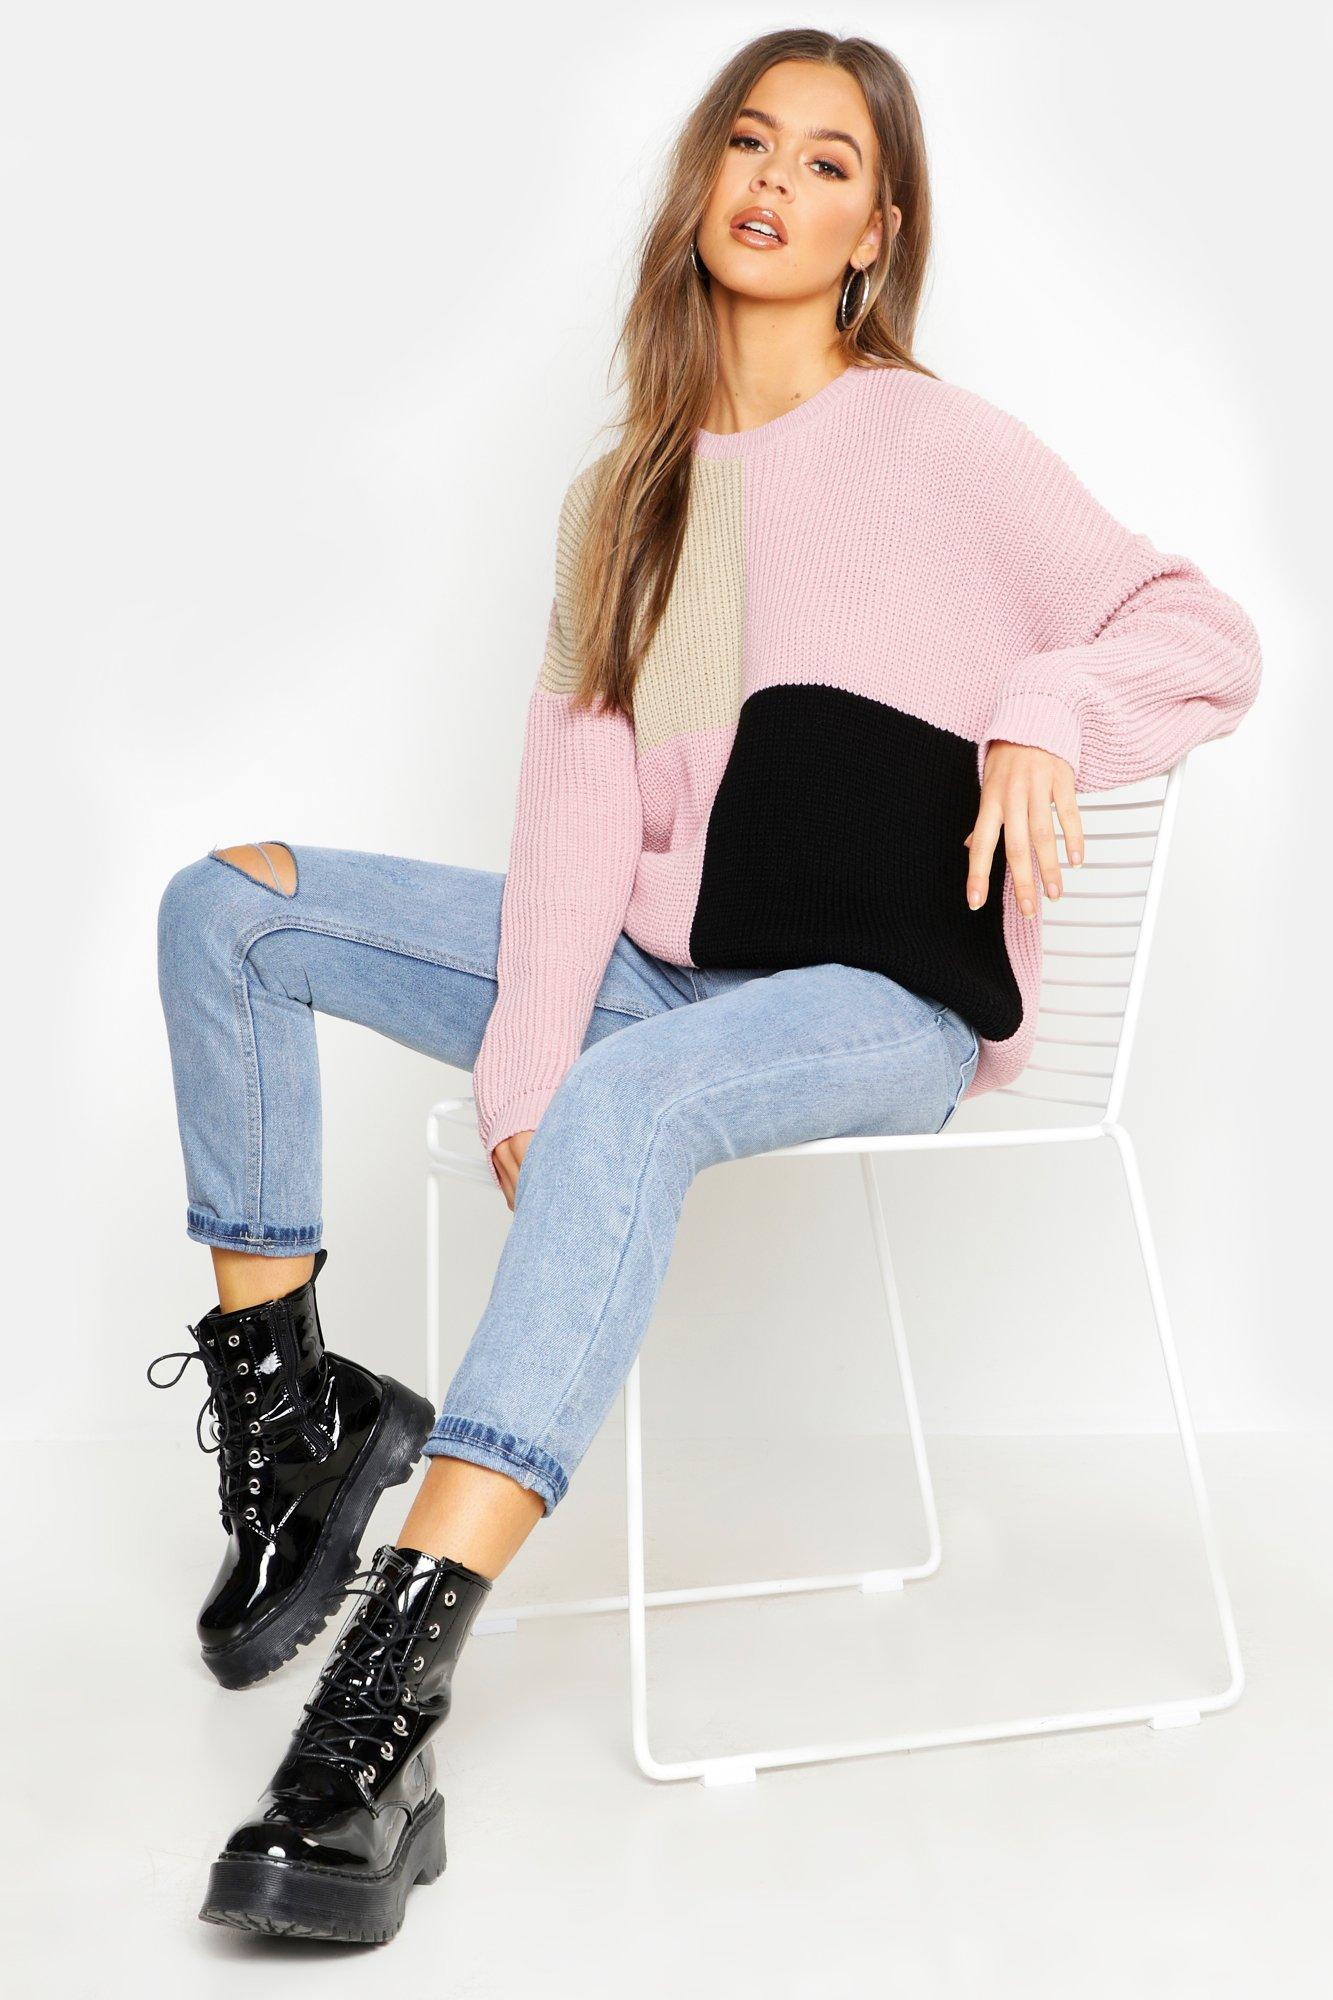 Womens Oversized Strickpullover im Colorblock-Design - hautfarben - L, Hautfarben - Boohoo.com